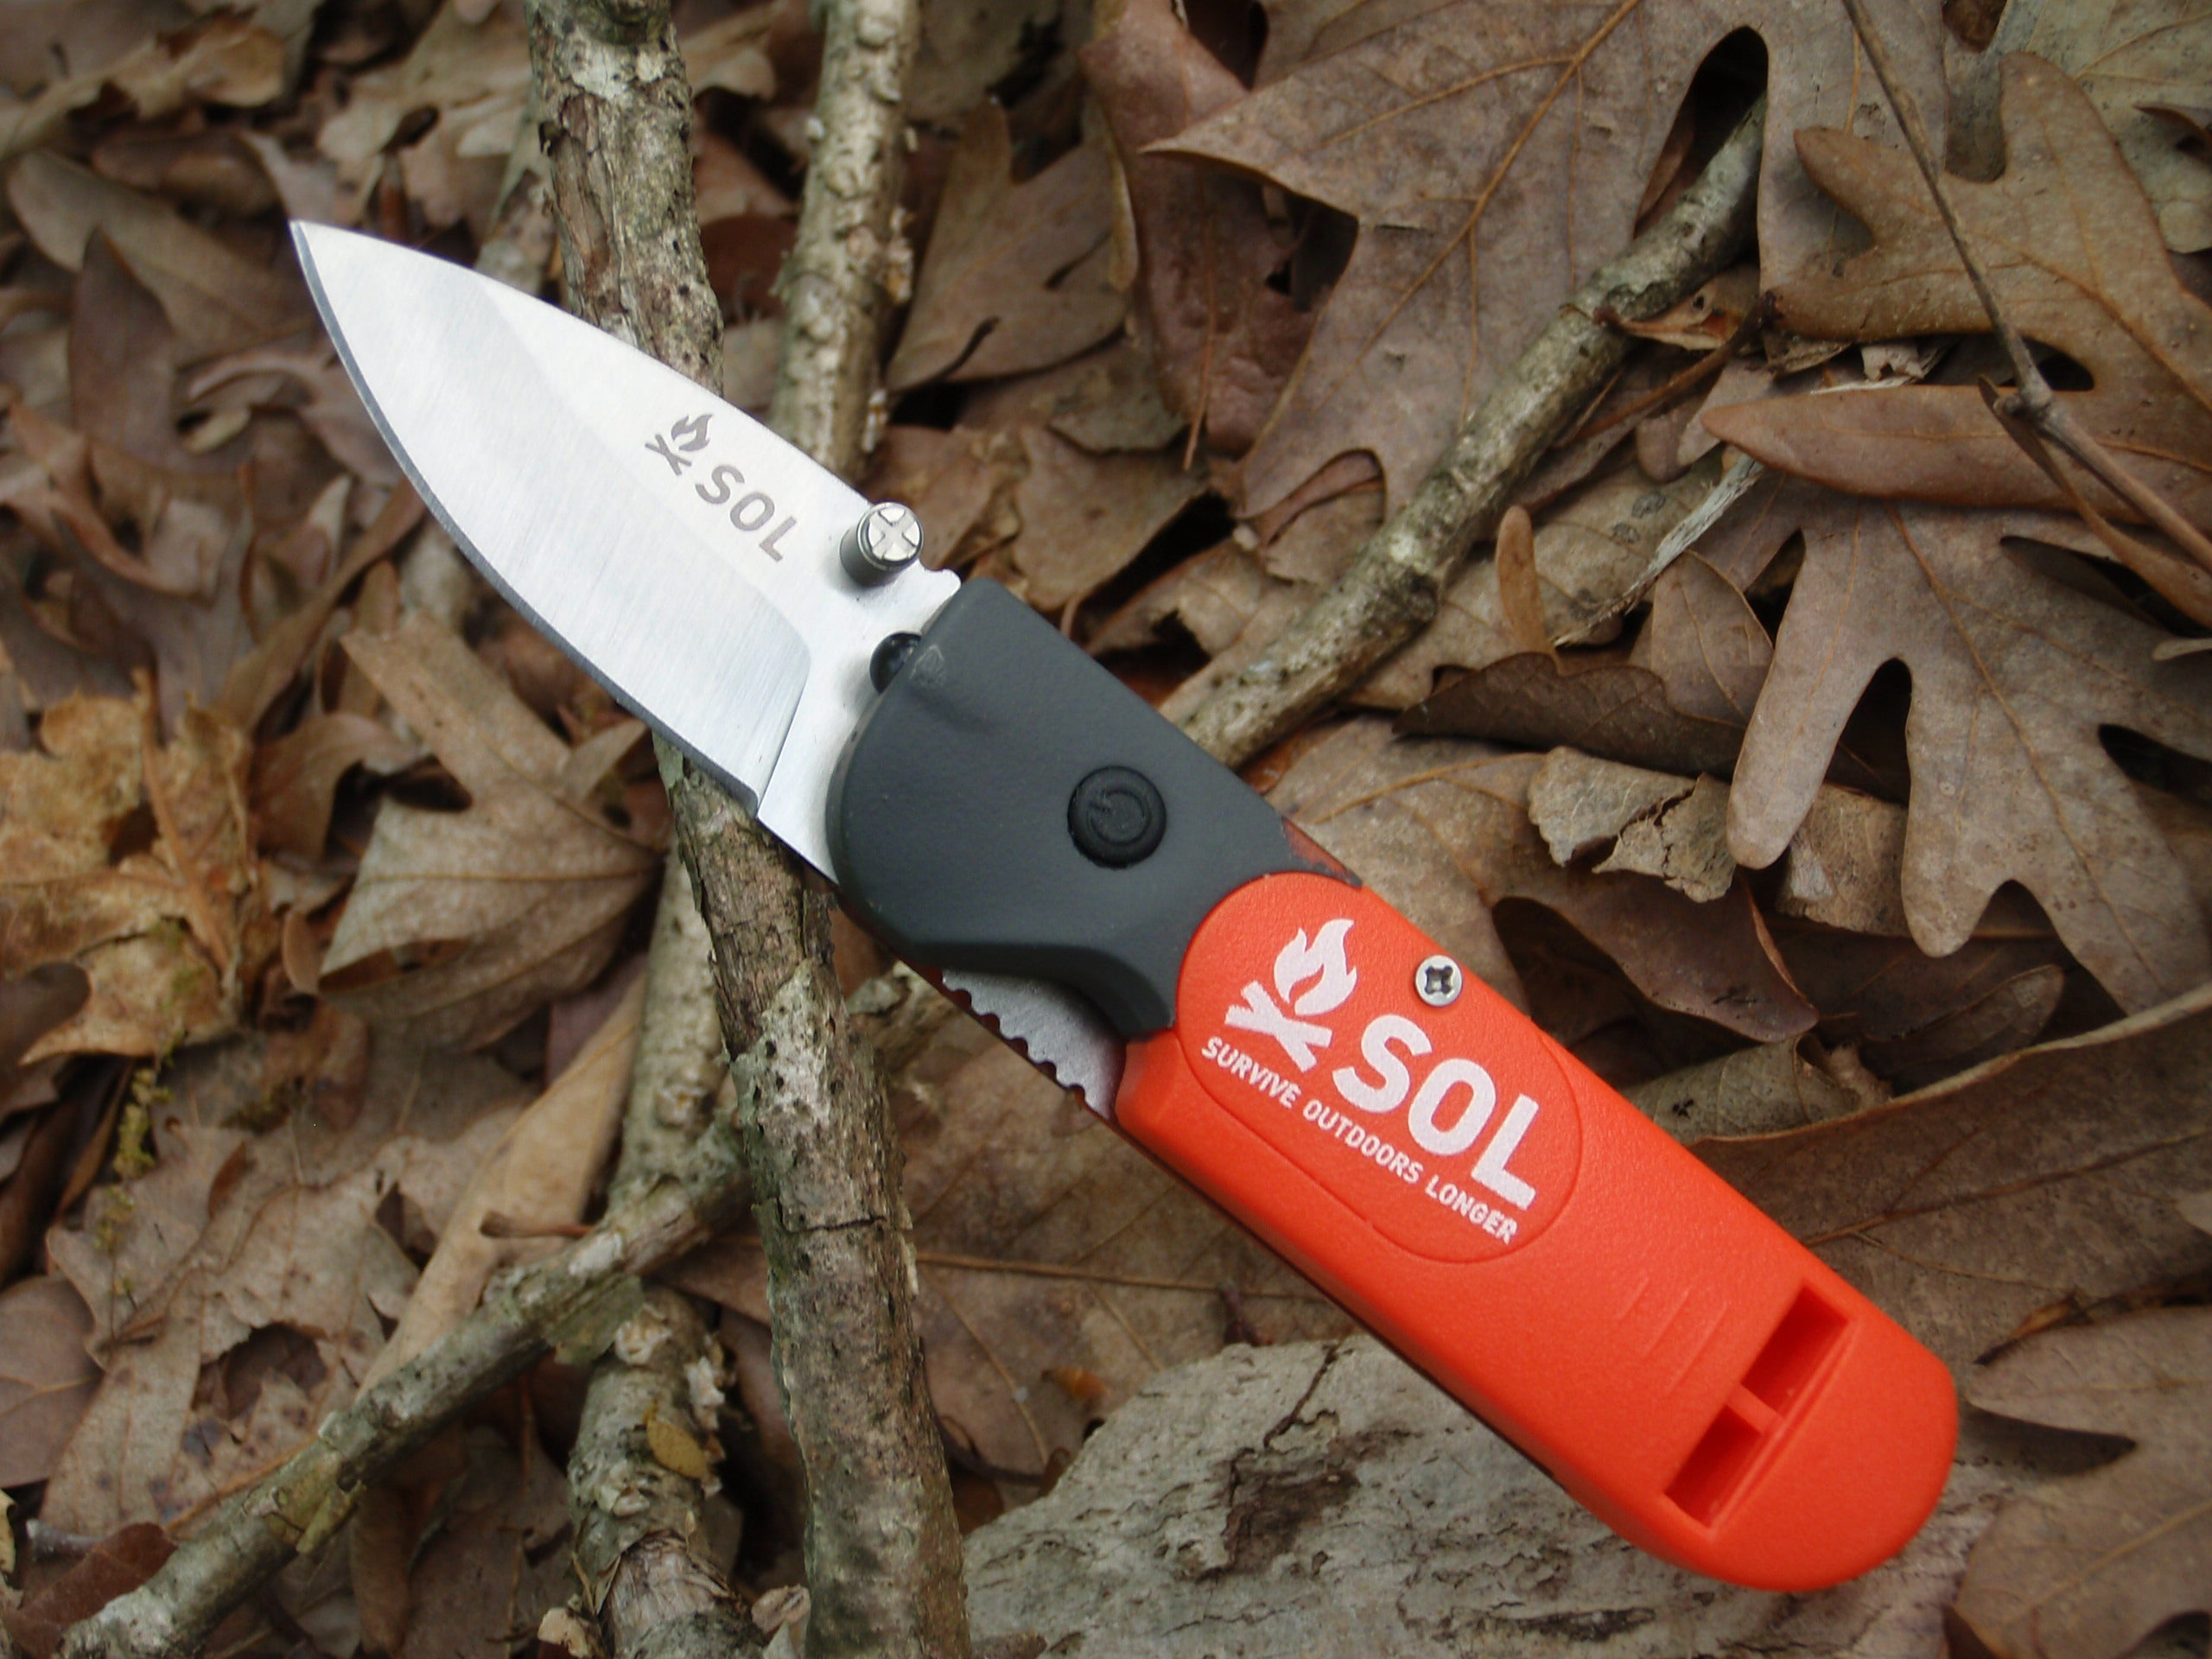 New 3-in-1 Survival Knife